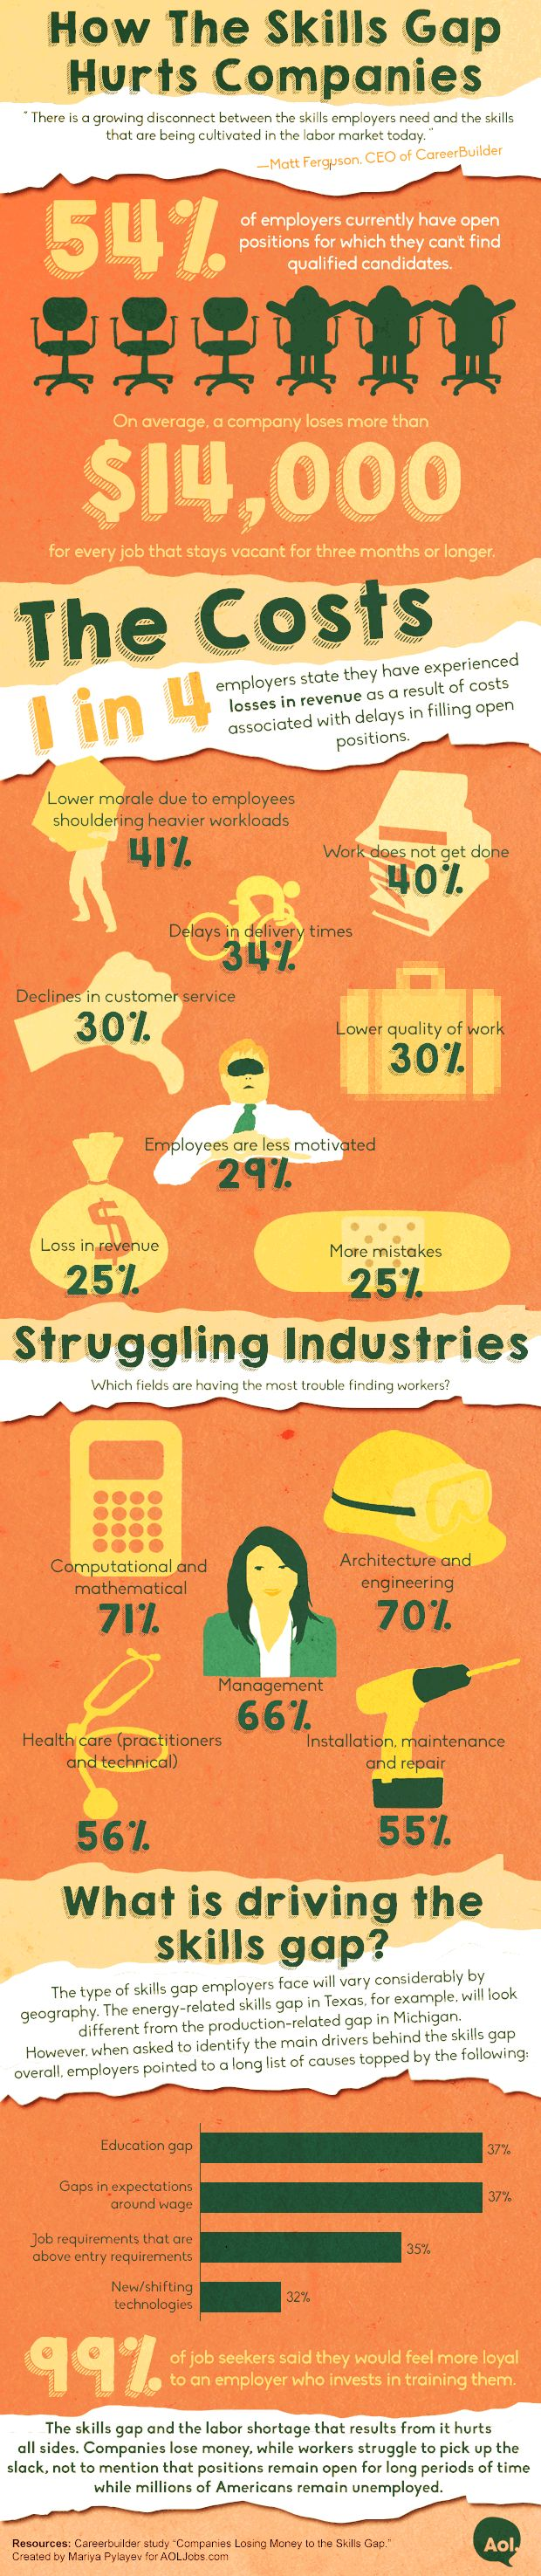 How The Skills Gap Hurts Companies [Infographic]